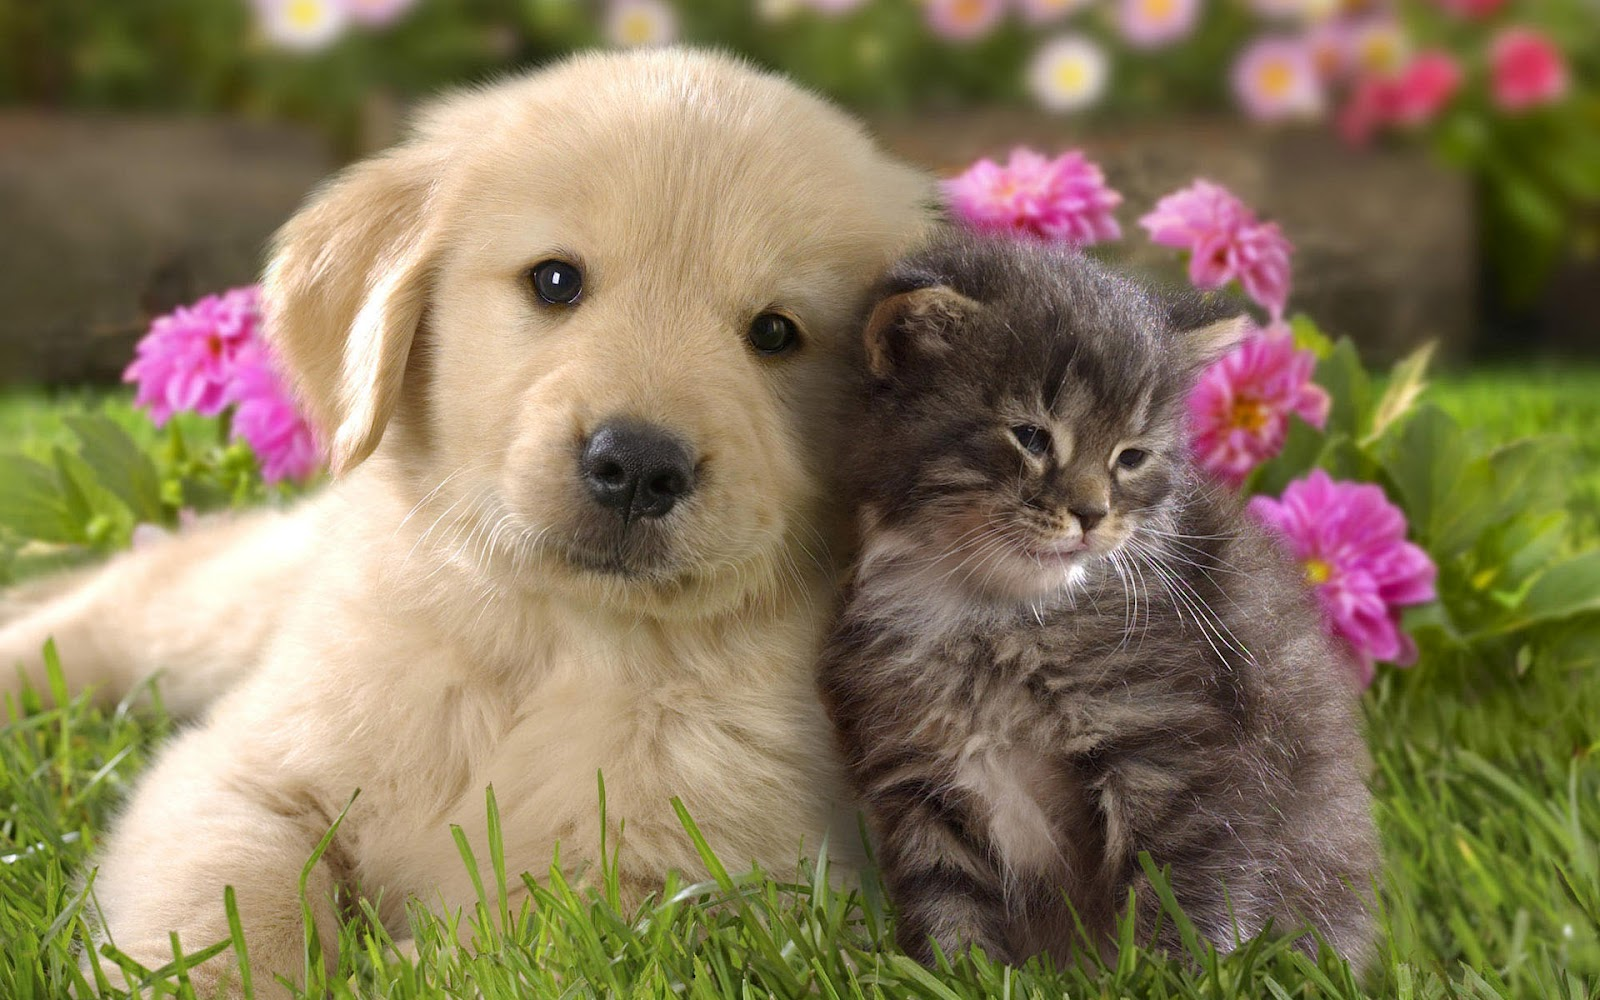 http://3.bp.blogspot.com/-F6gqZ3yxVdU/UCKGArNs9TI/AAAAAAAAALM/cOACgjHjWYA/s1600/hd-cats-wallpapers-cute-cat-and-dog-cuddling-backgrounds.jpg